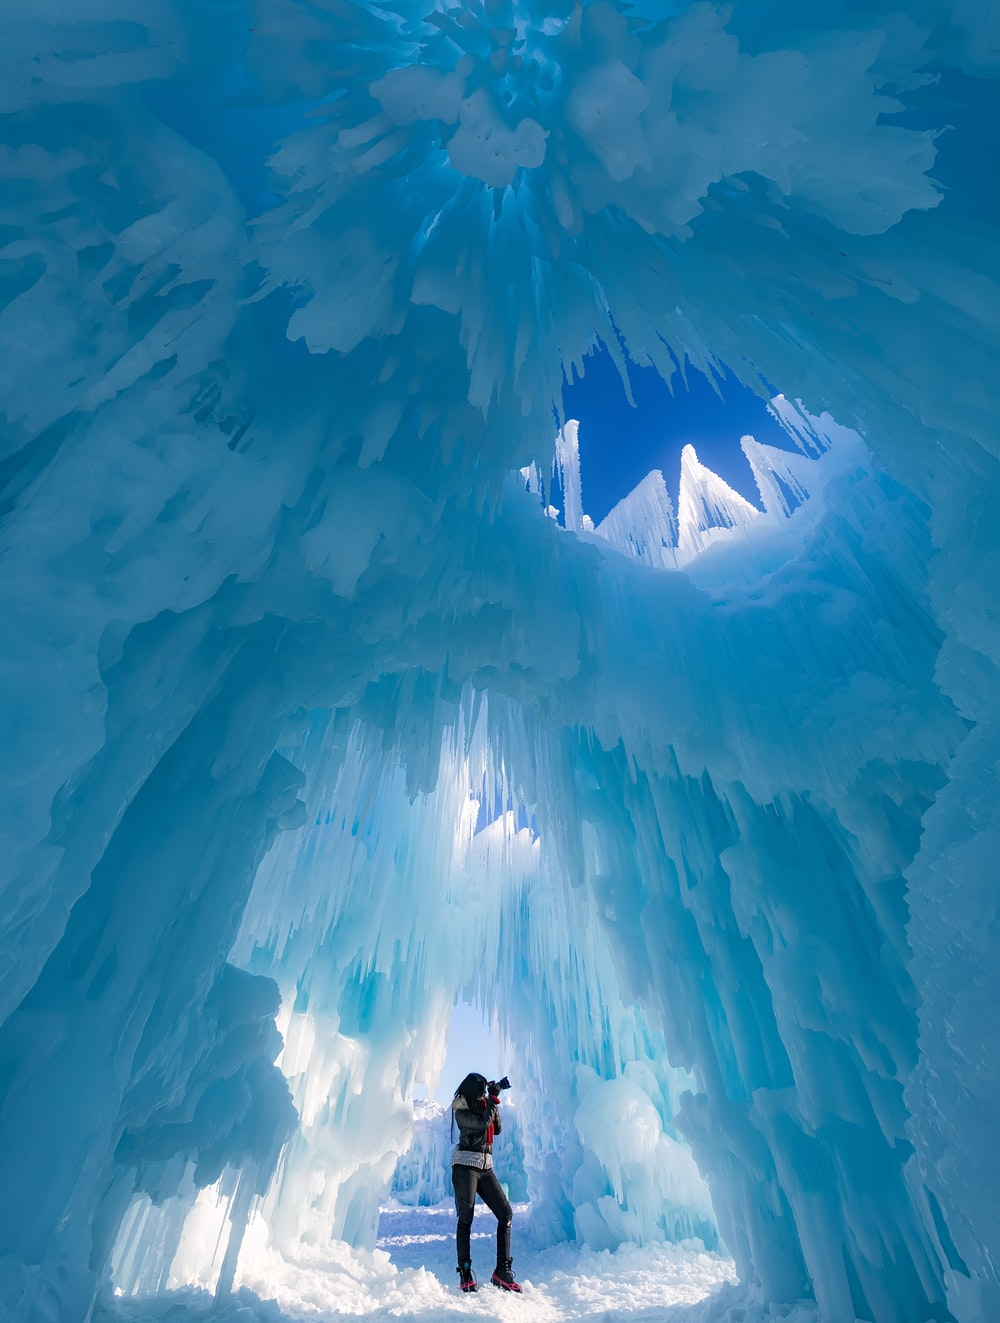 woman taking photograph in ice cave